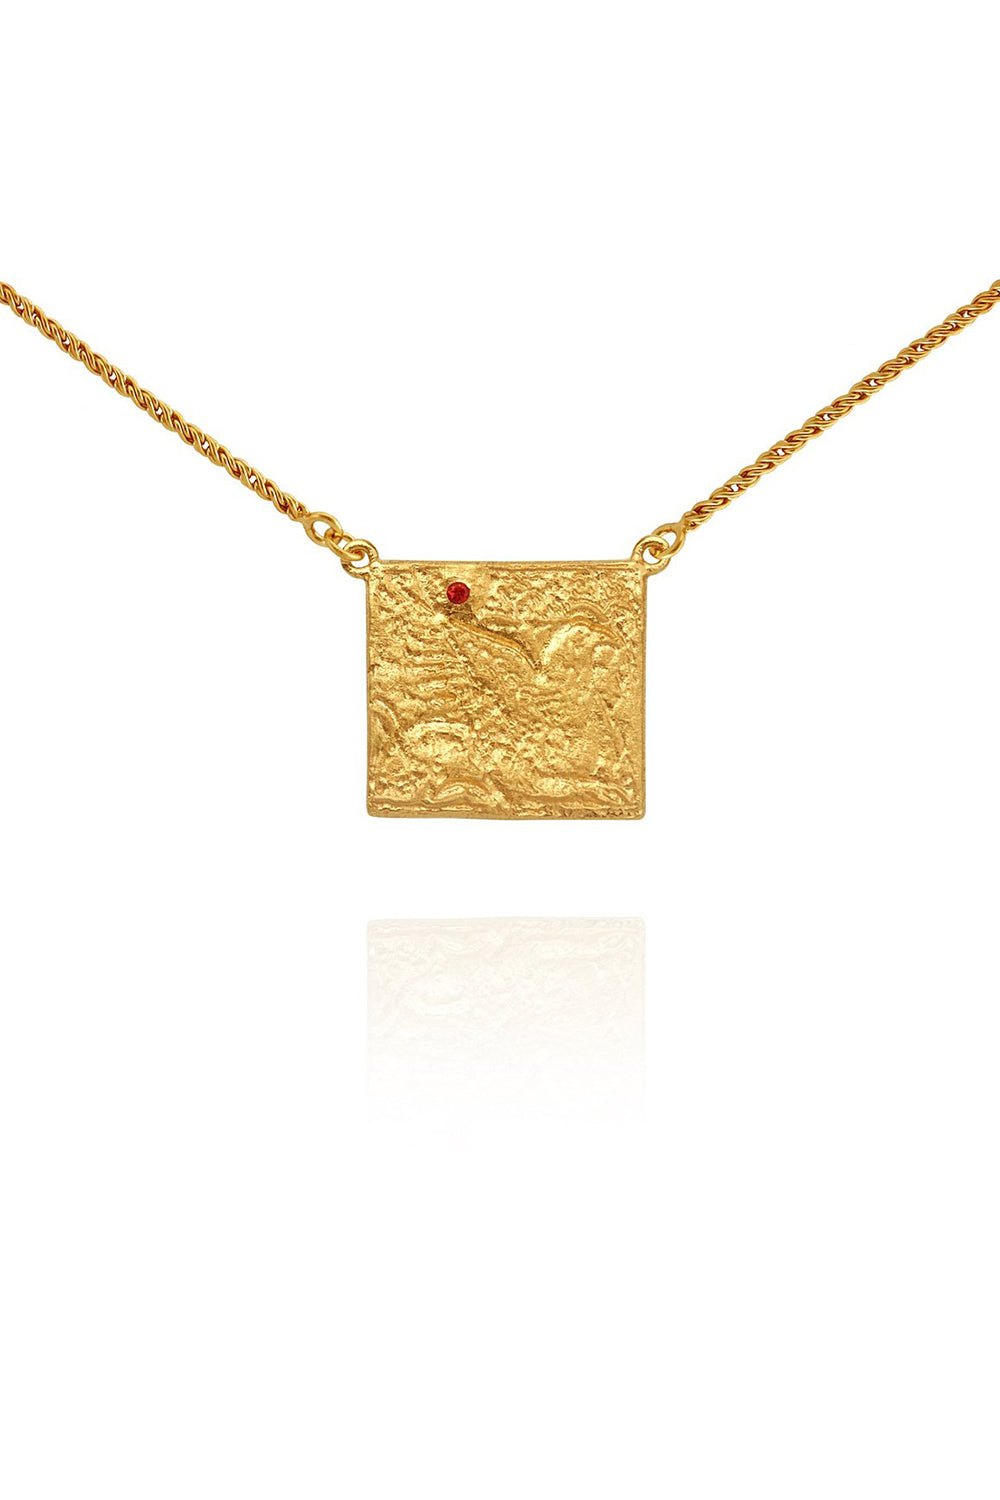 Temple of the Sun ~ Pheonix Necklace Gold